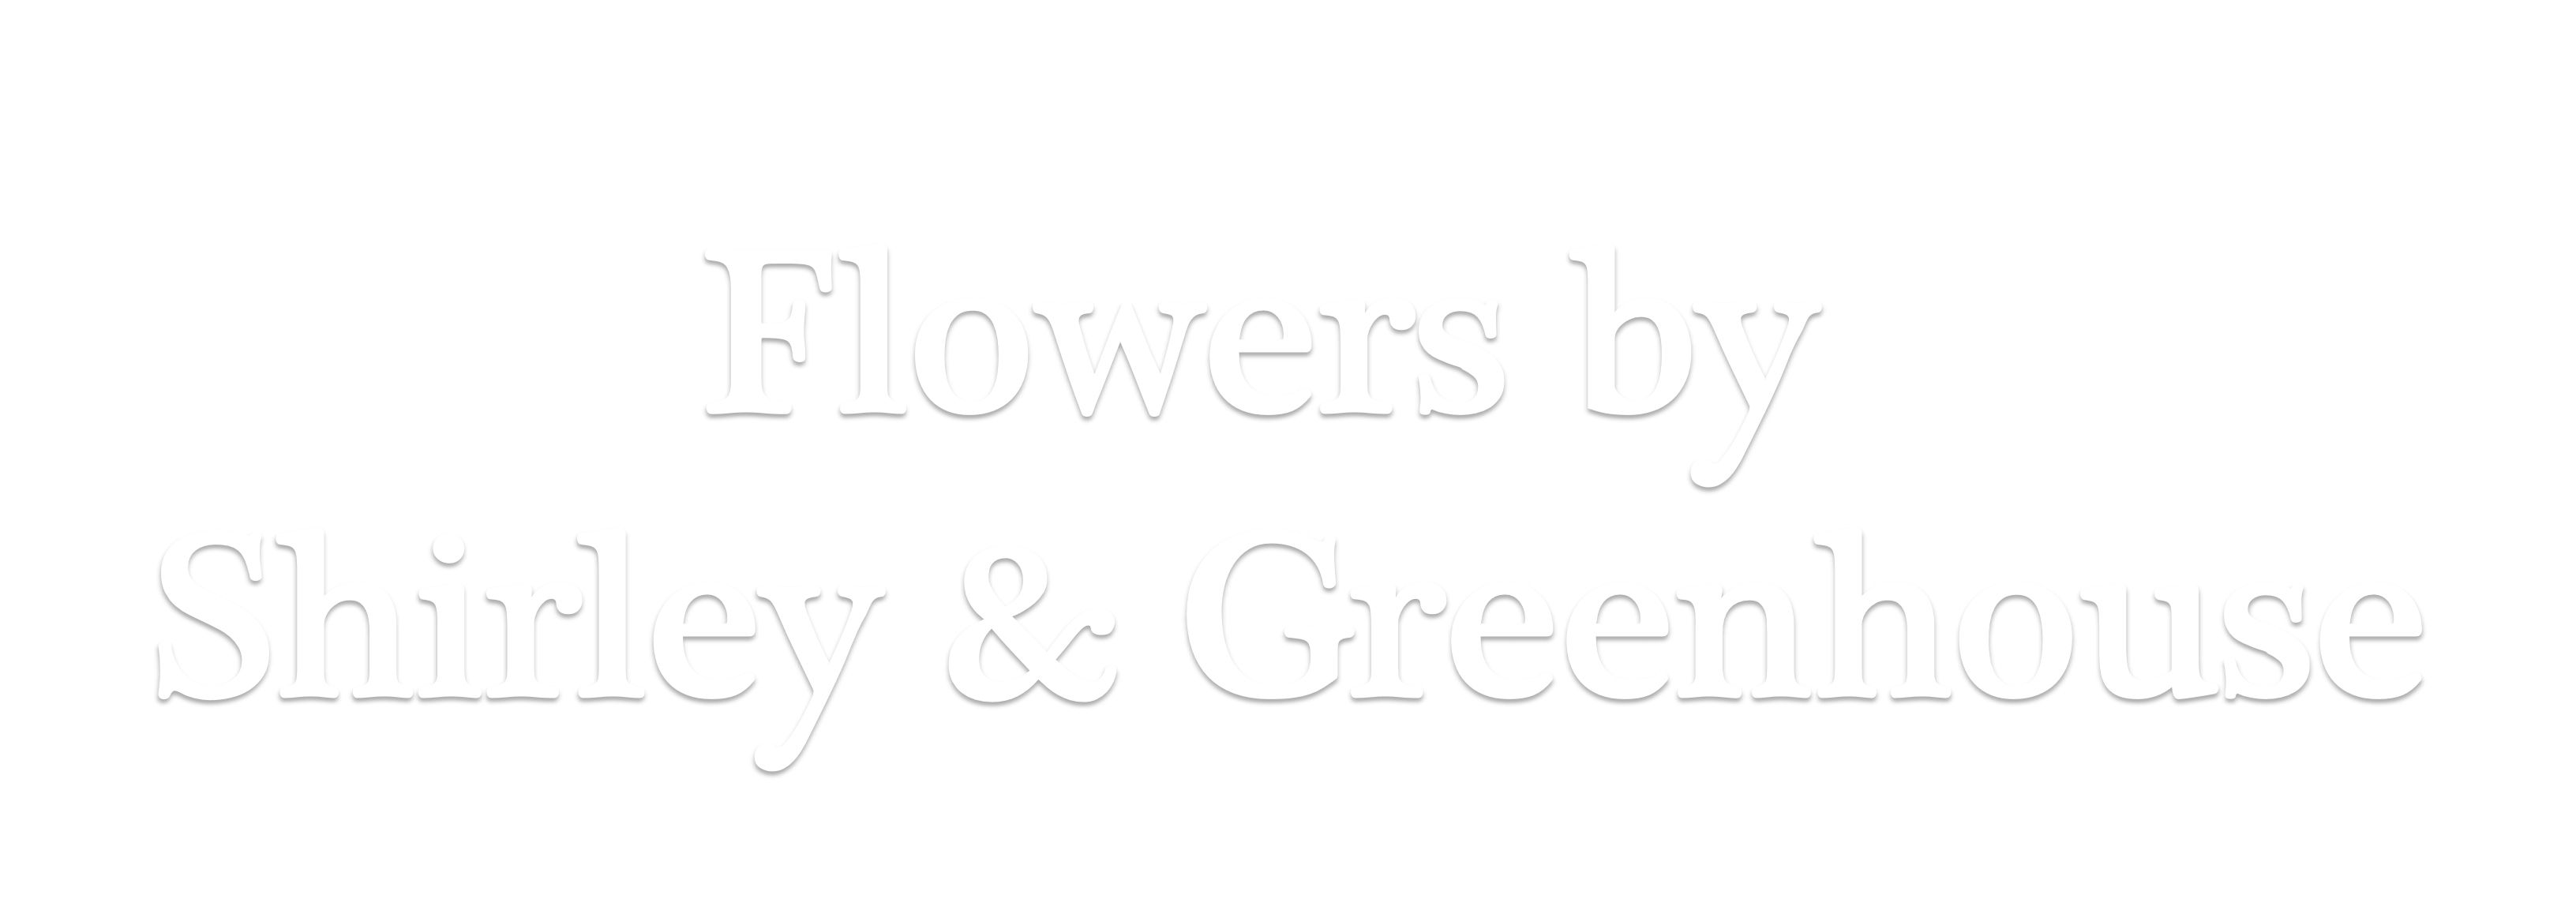 Flowers By Shirley, Inc. & Greenhouse